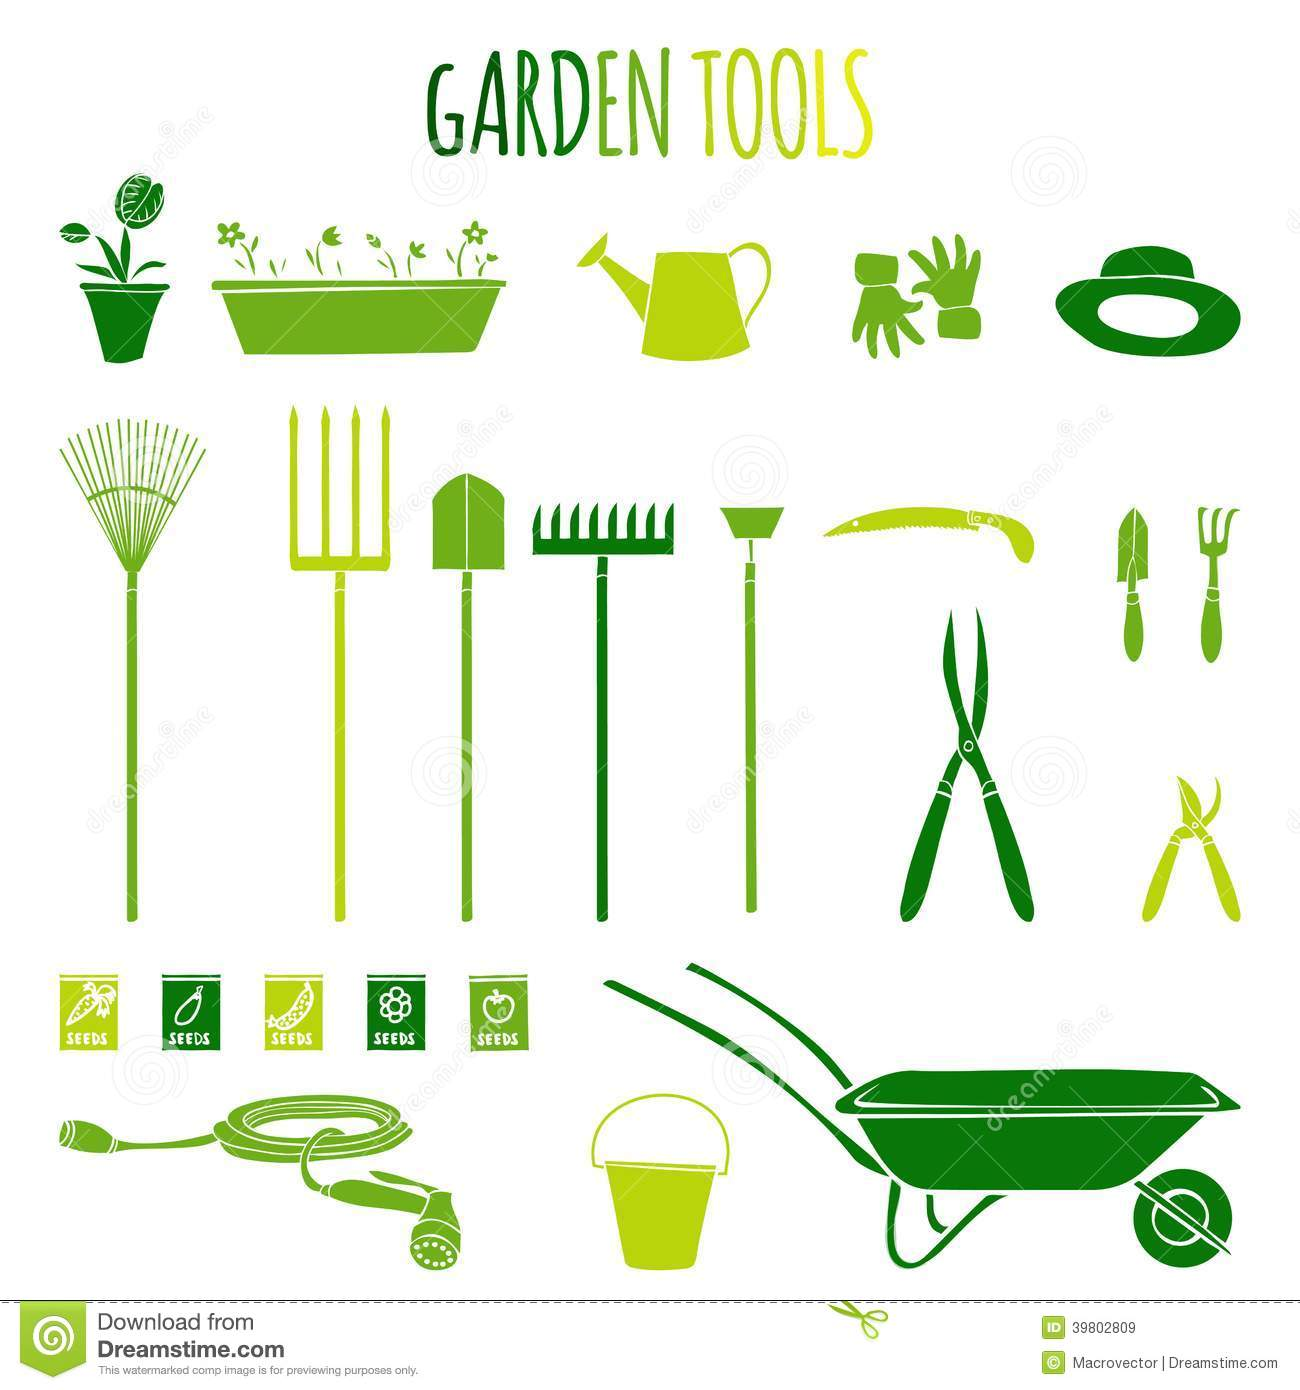 Garden tools icons set stock vector image 39802809 for Gardening tools cartoon